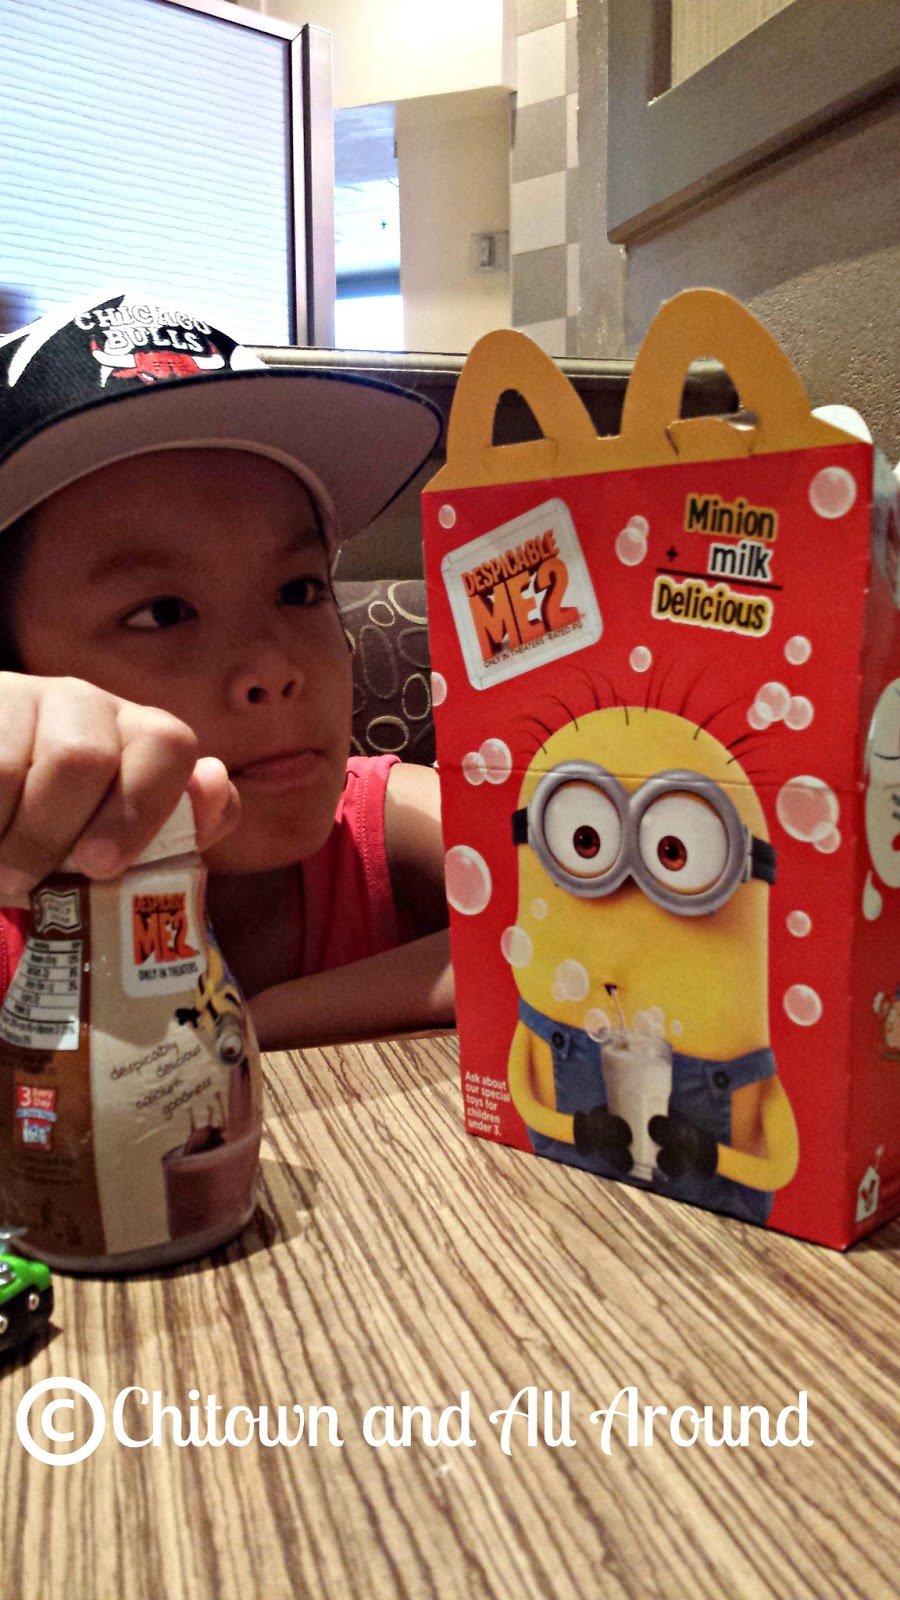 chitown and all around movie screening despicable me 2